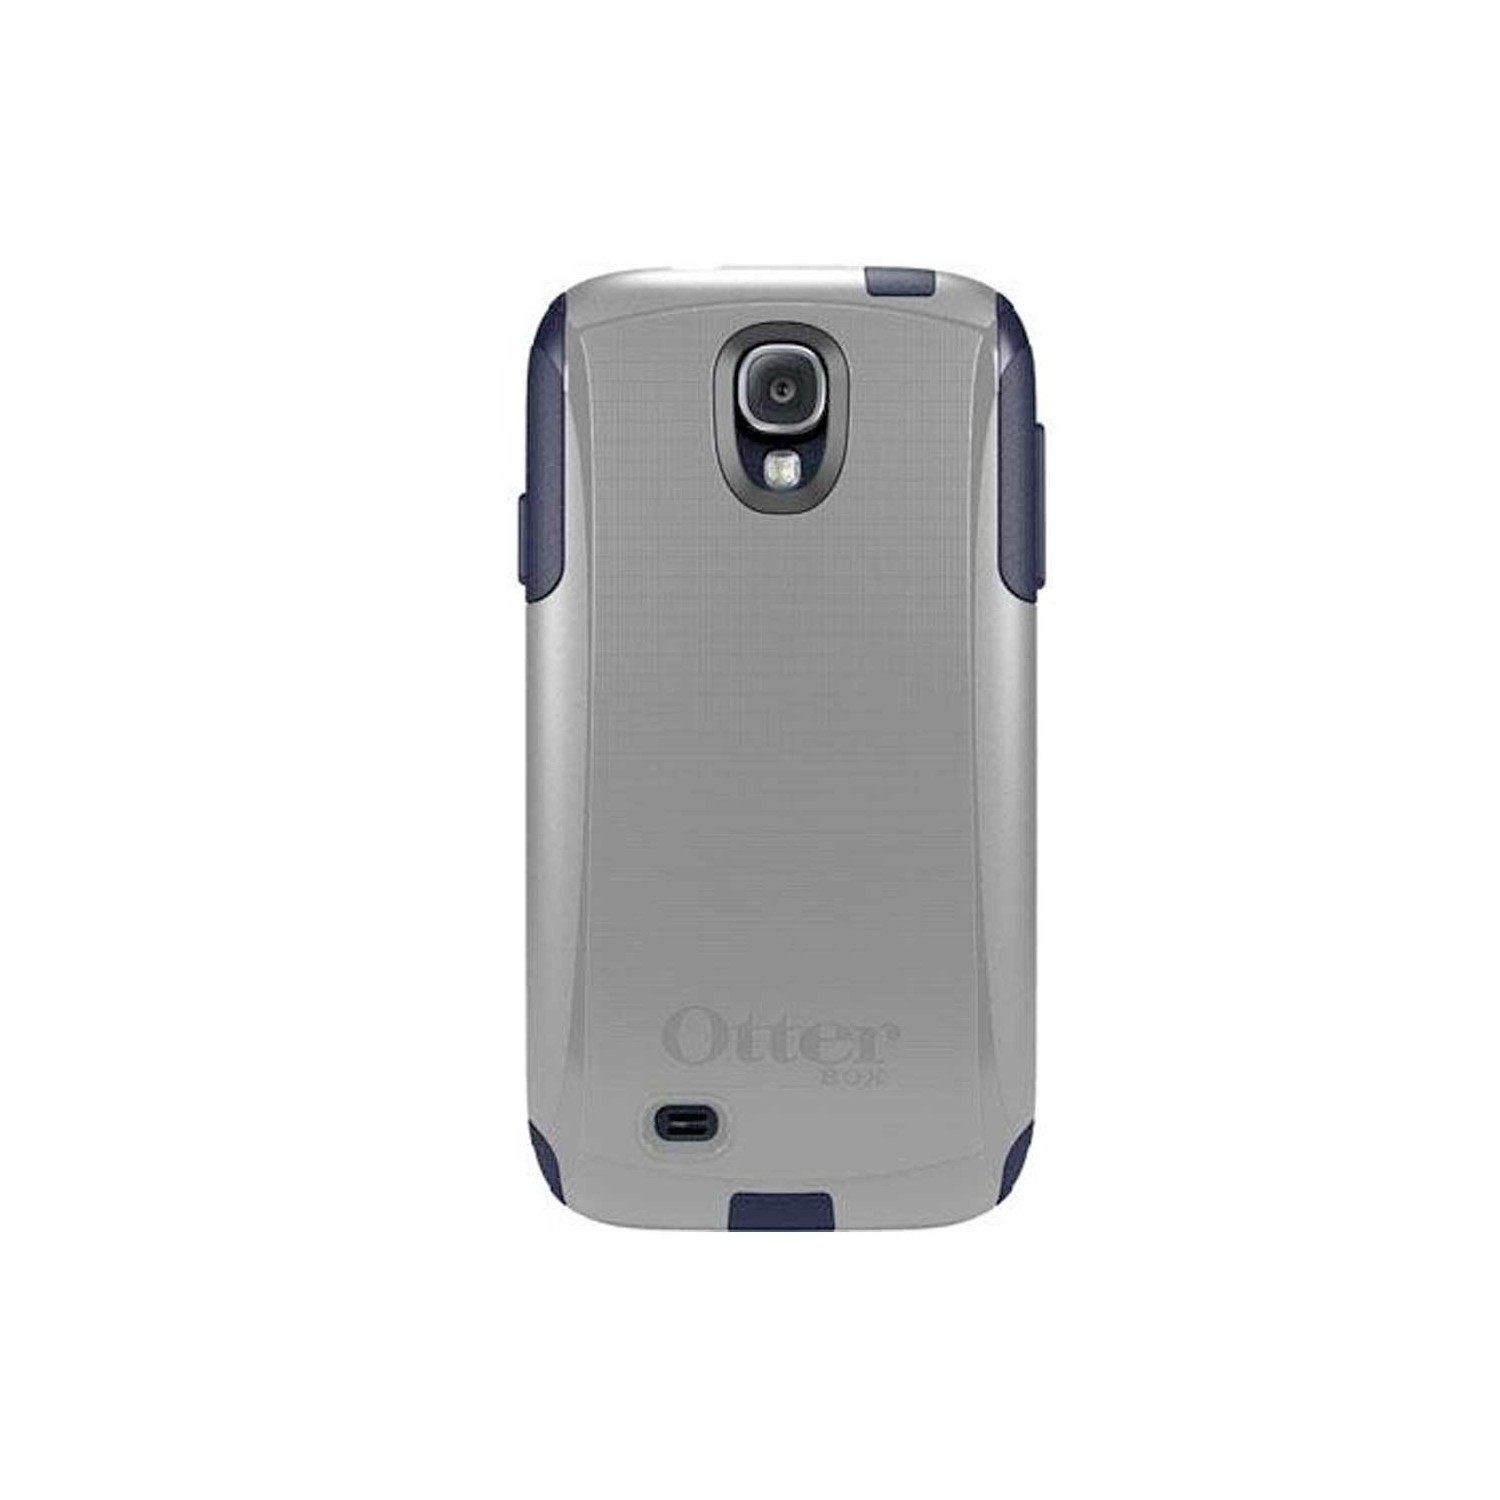 Case - Otterbox Commuter for Samsung S3 i9300 Gray